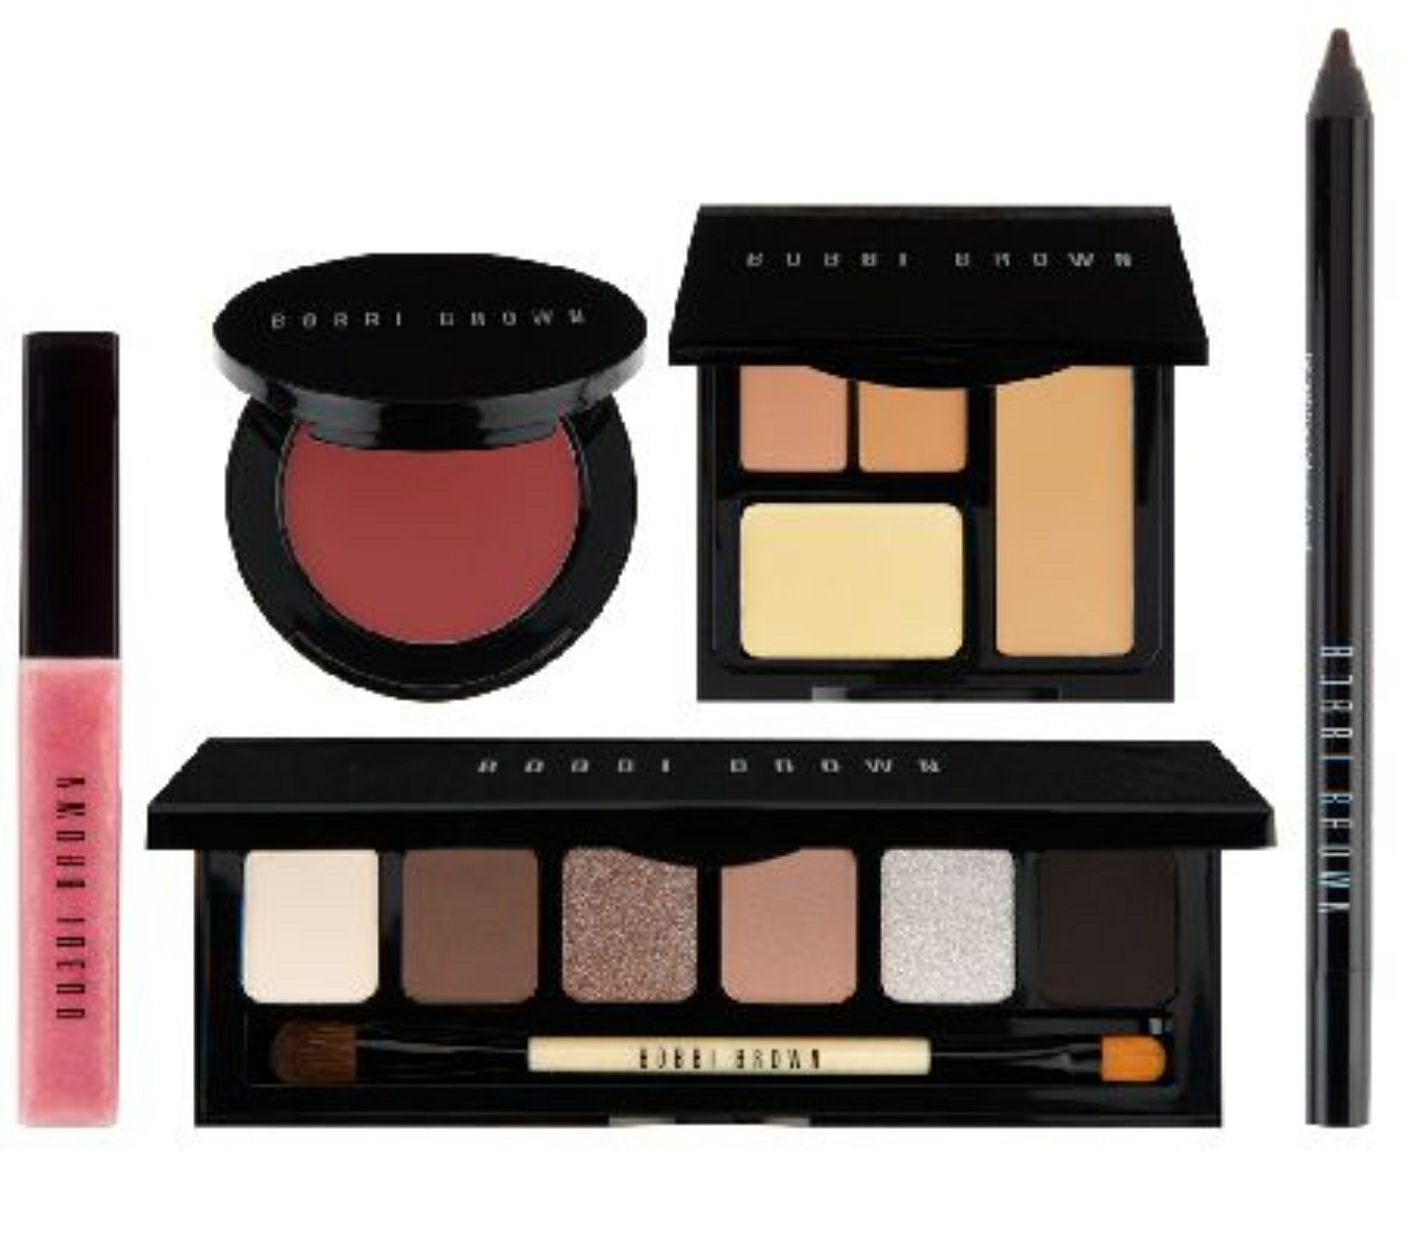 Bobbi's Basics Collection Bobbi Brown TSV April 4/29